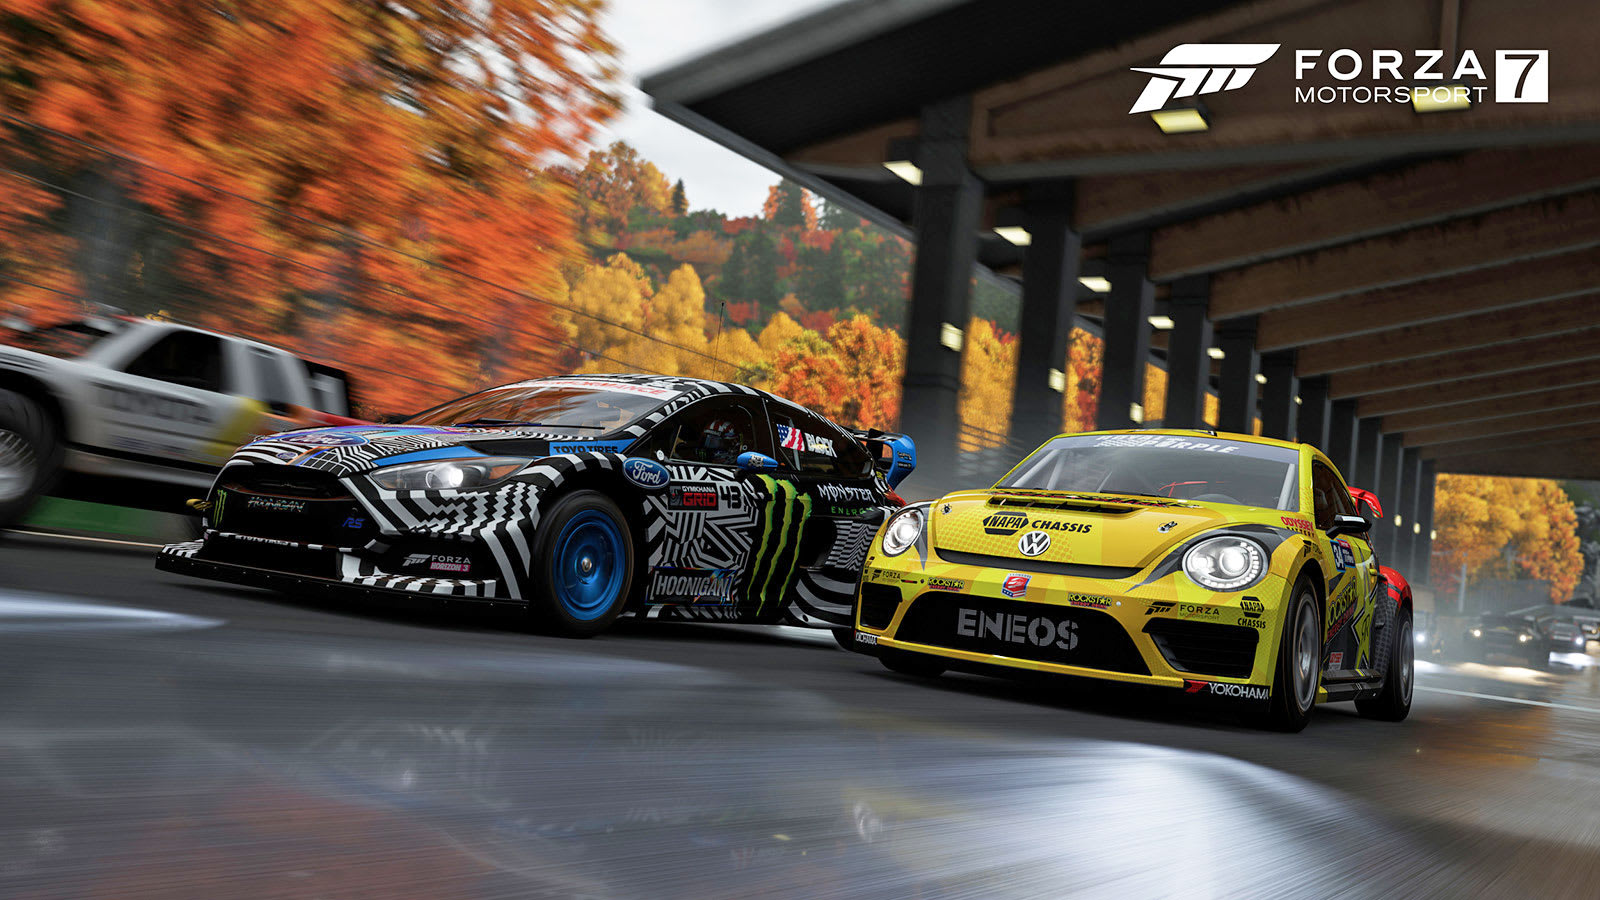 531eea6d488 Forza Motorsport 7 review: It's everything you expected